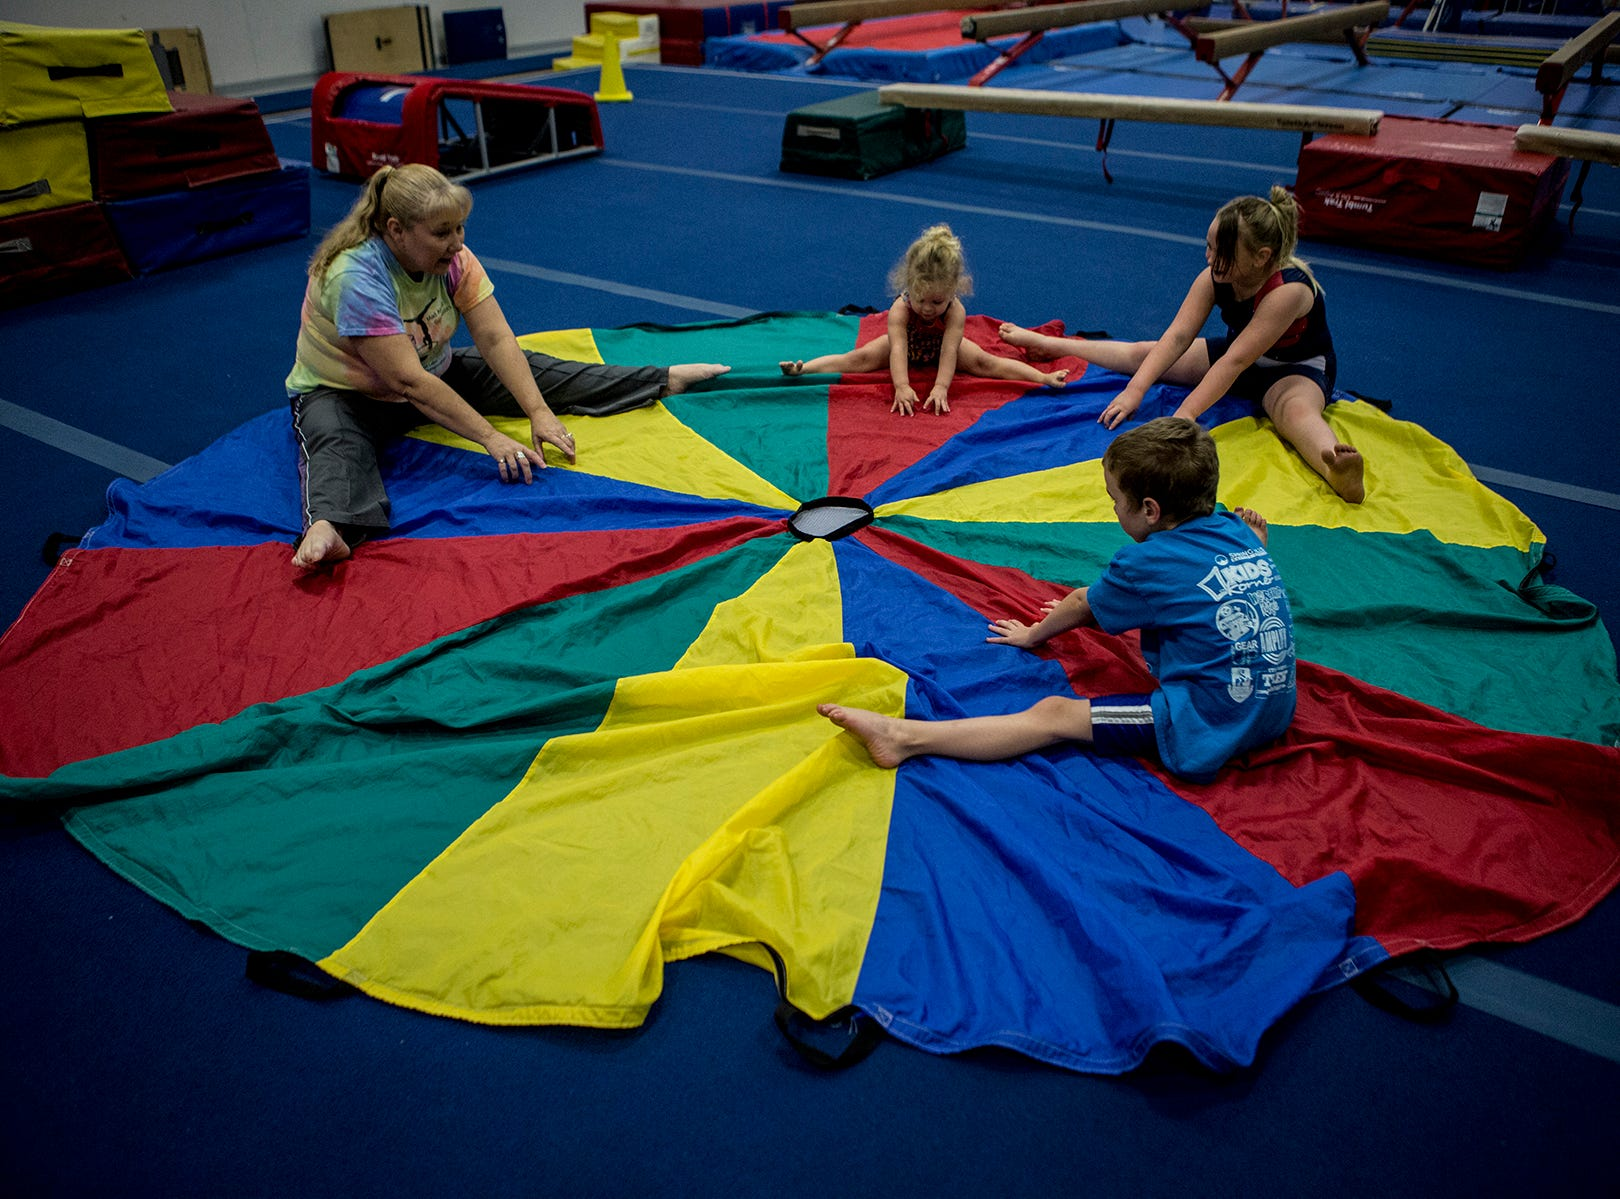 Diane Hodge stretches with siblings Eva, Alyssa and Micaiah Swick during a preschool open gymnastics class at the Licking County YMCA. The YMCA will be holding a second preschool open gym Friday January 4th in the Mitchell Center. Prices are $15 for members and $25 for nonmembers, ages 3-6.